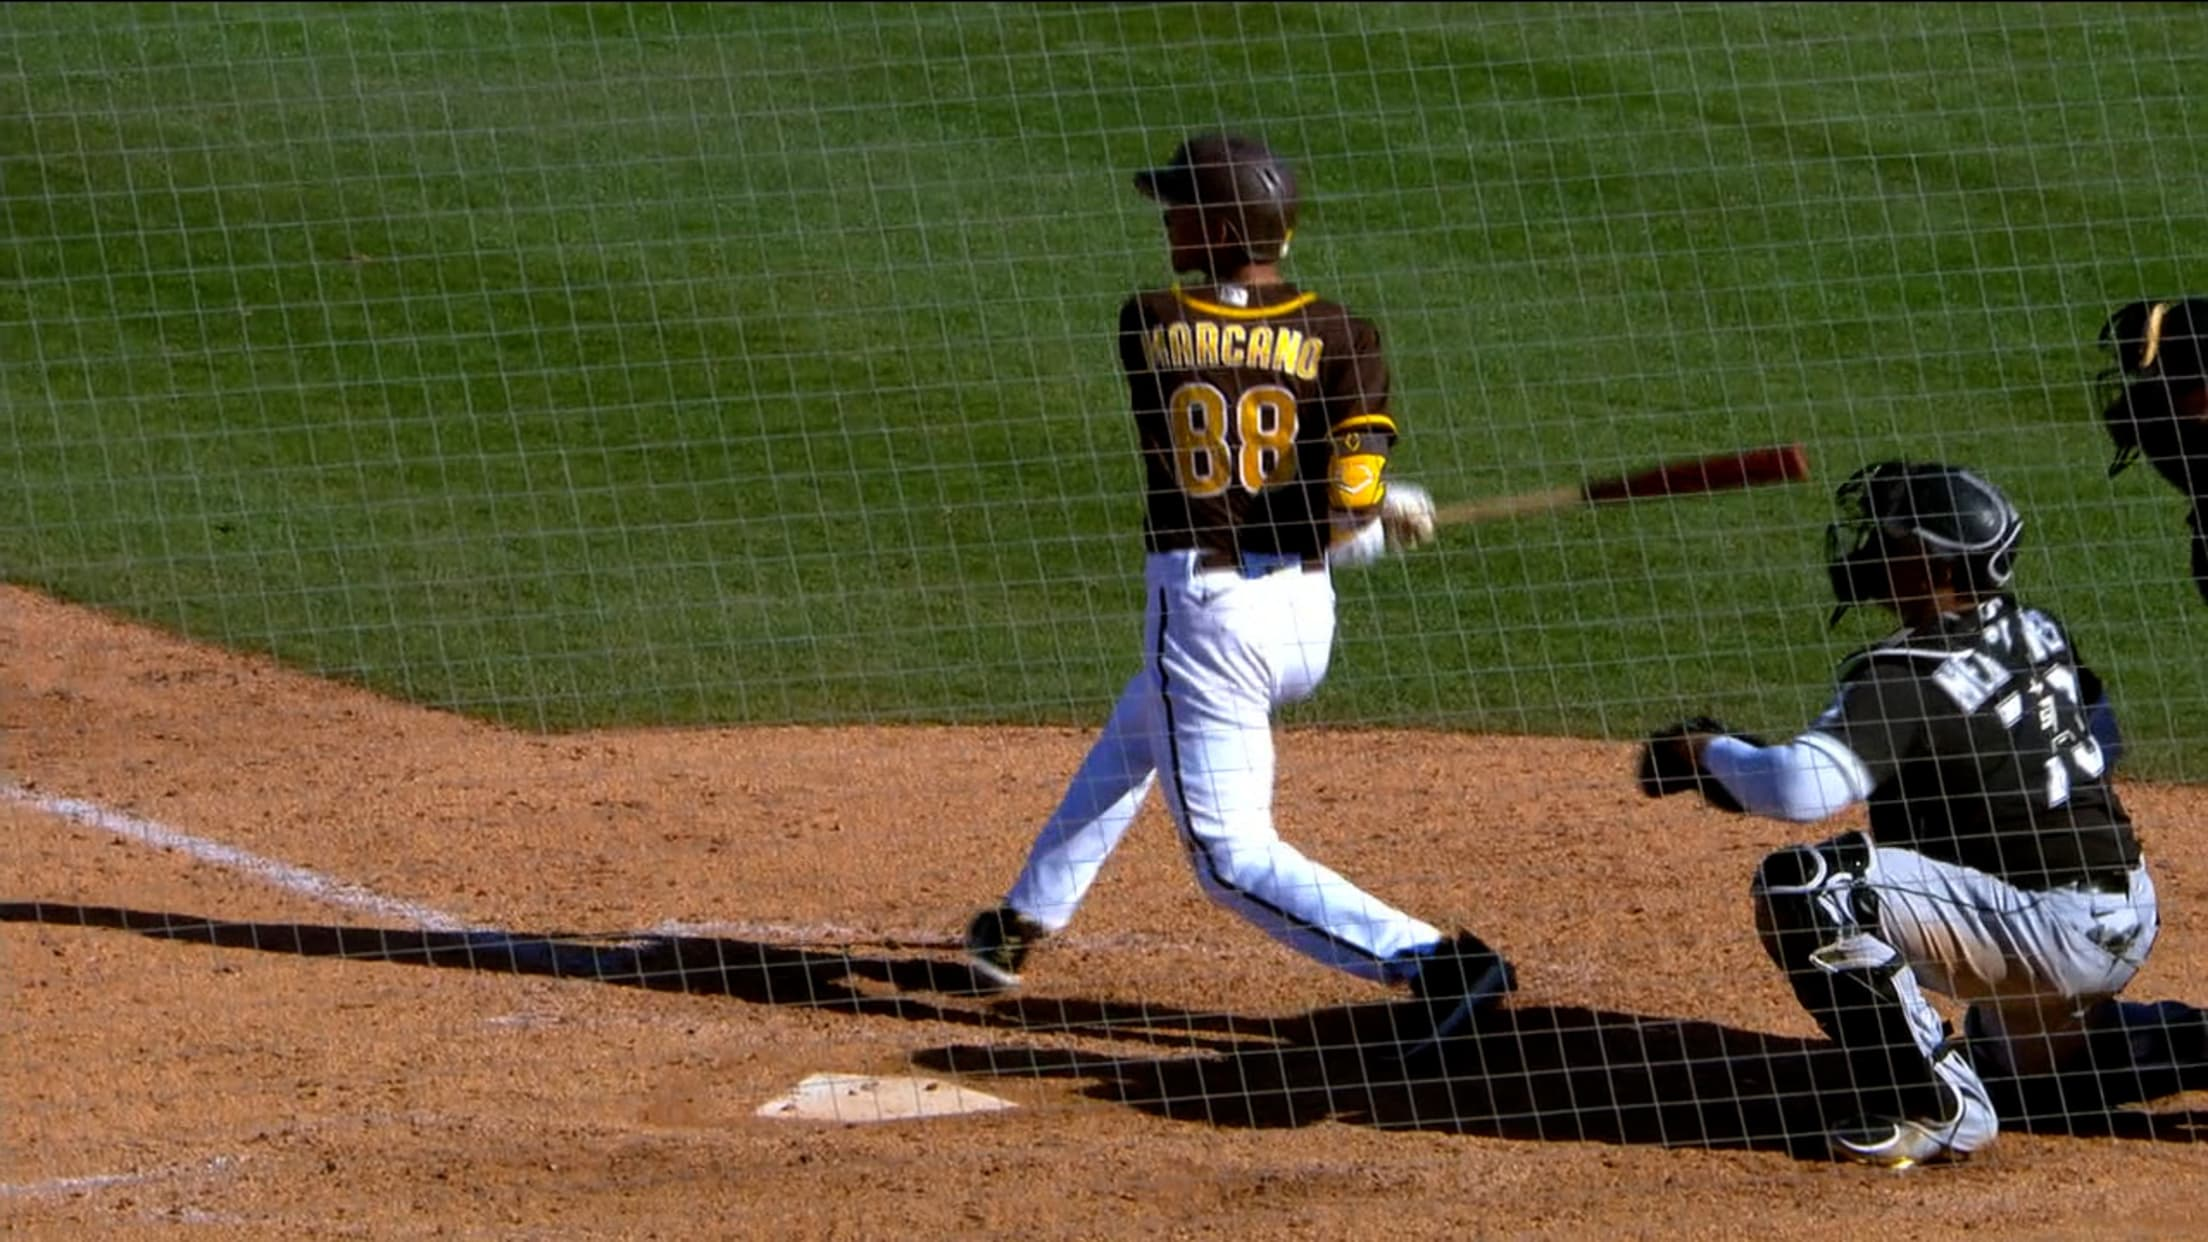 Top Prospects: Marcano, PIT